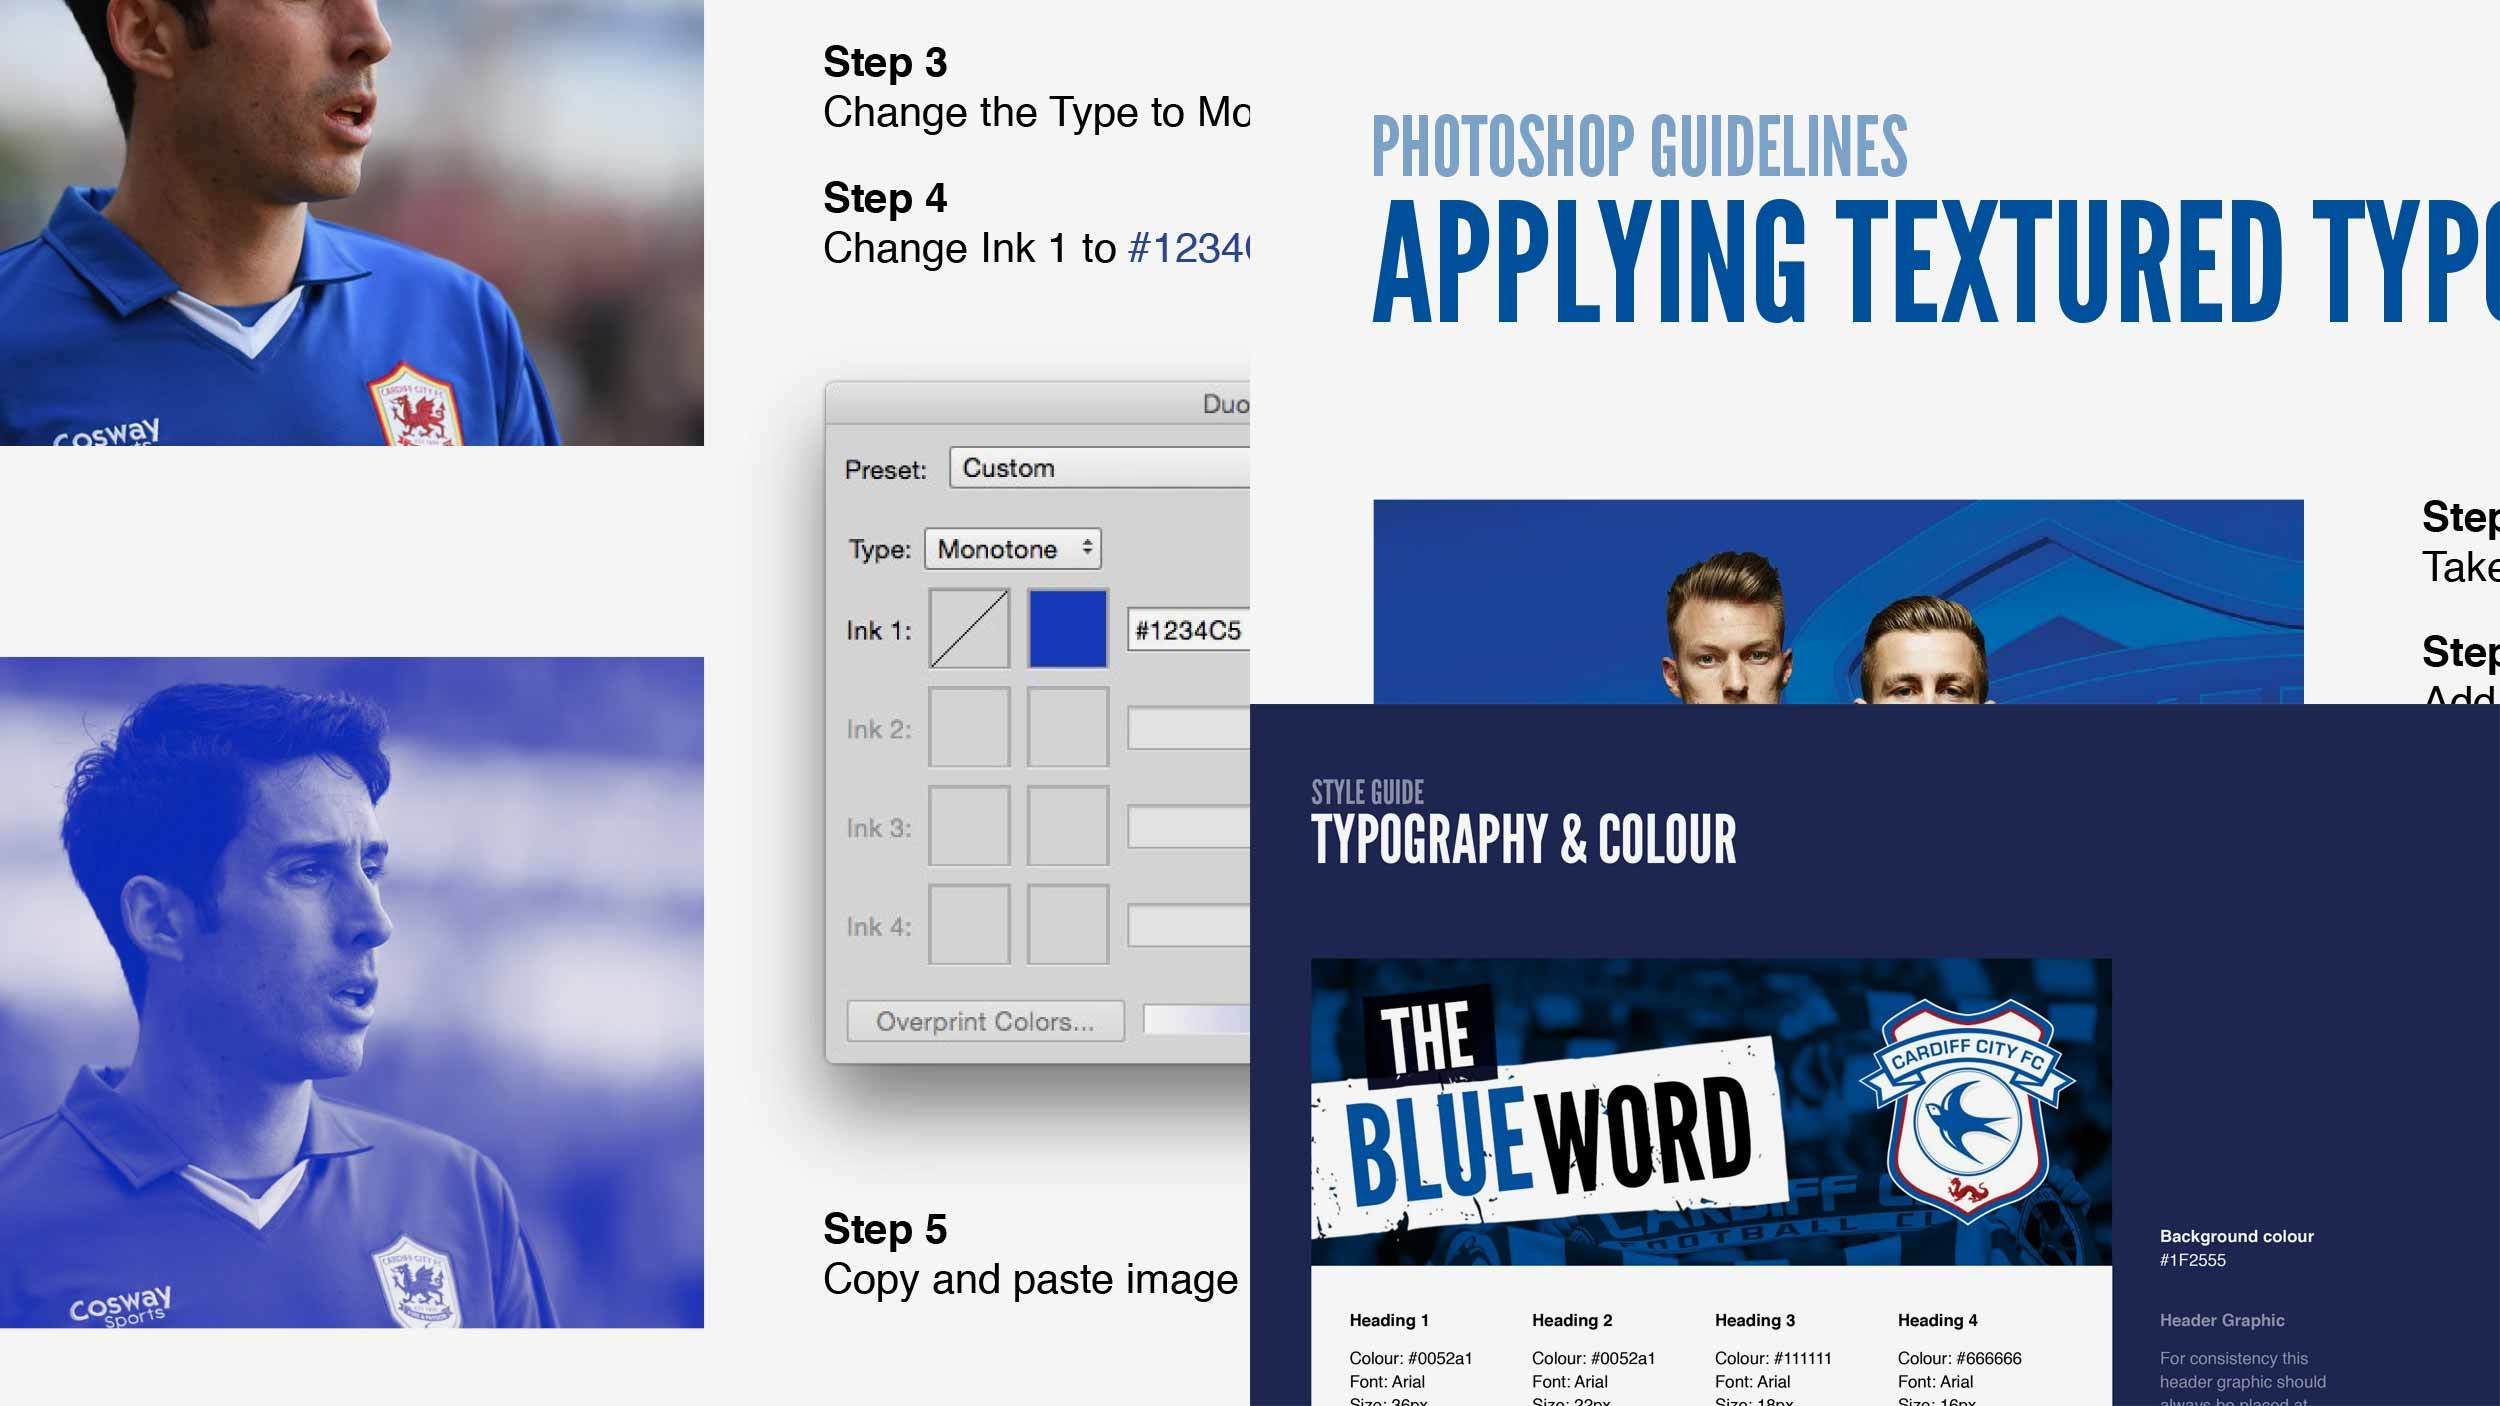 Images of the style guide for The Blue Word email